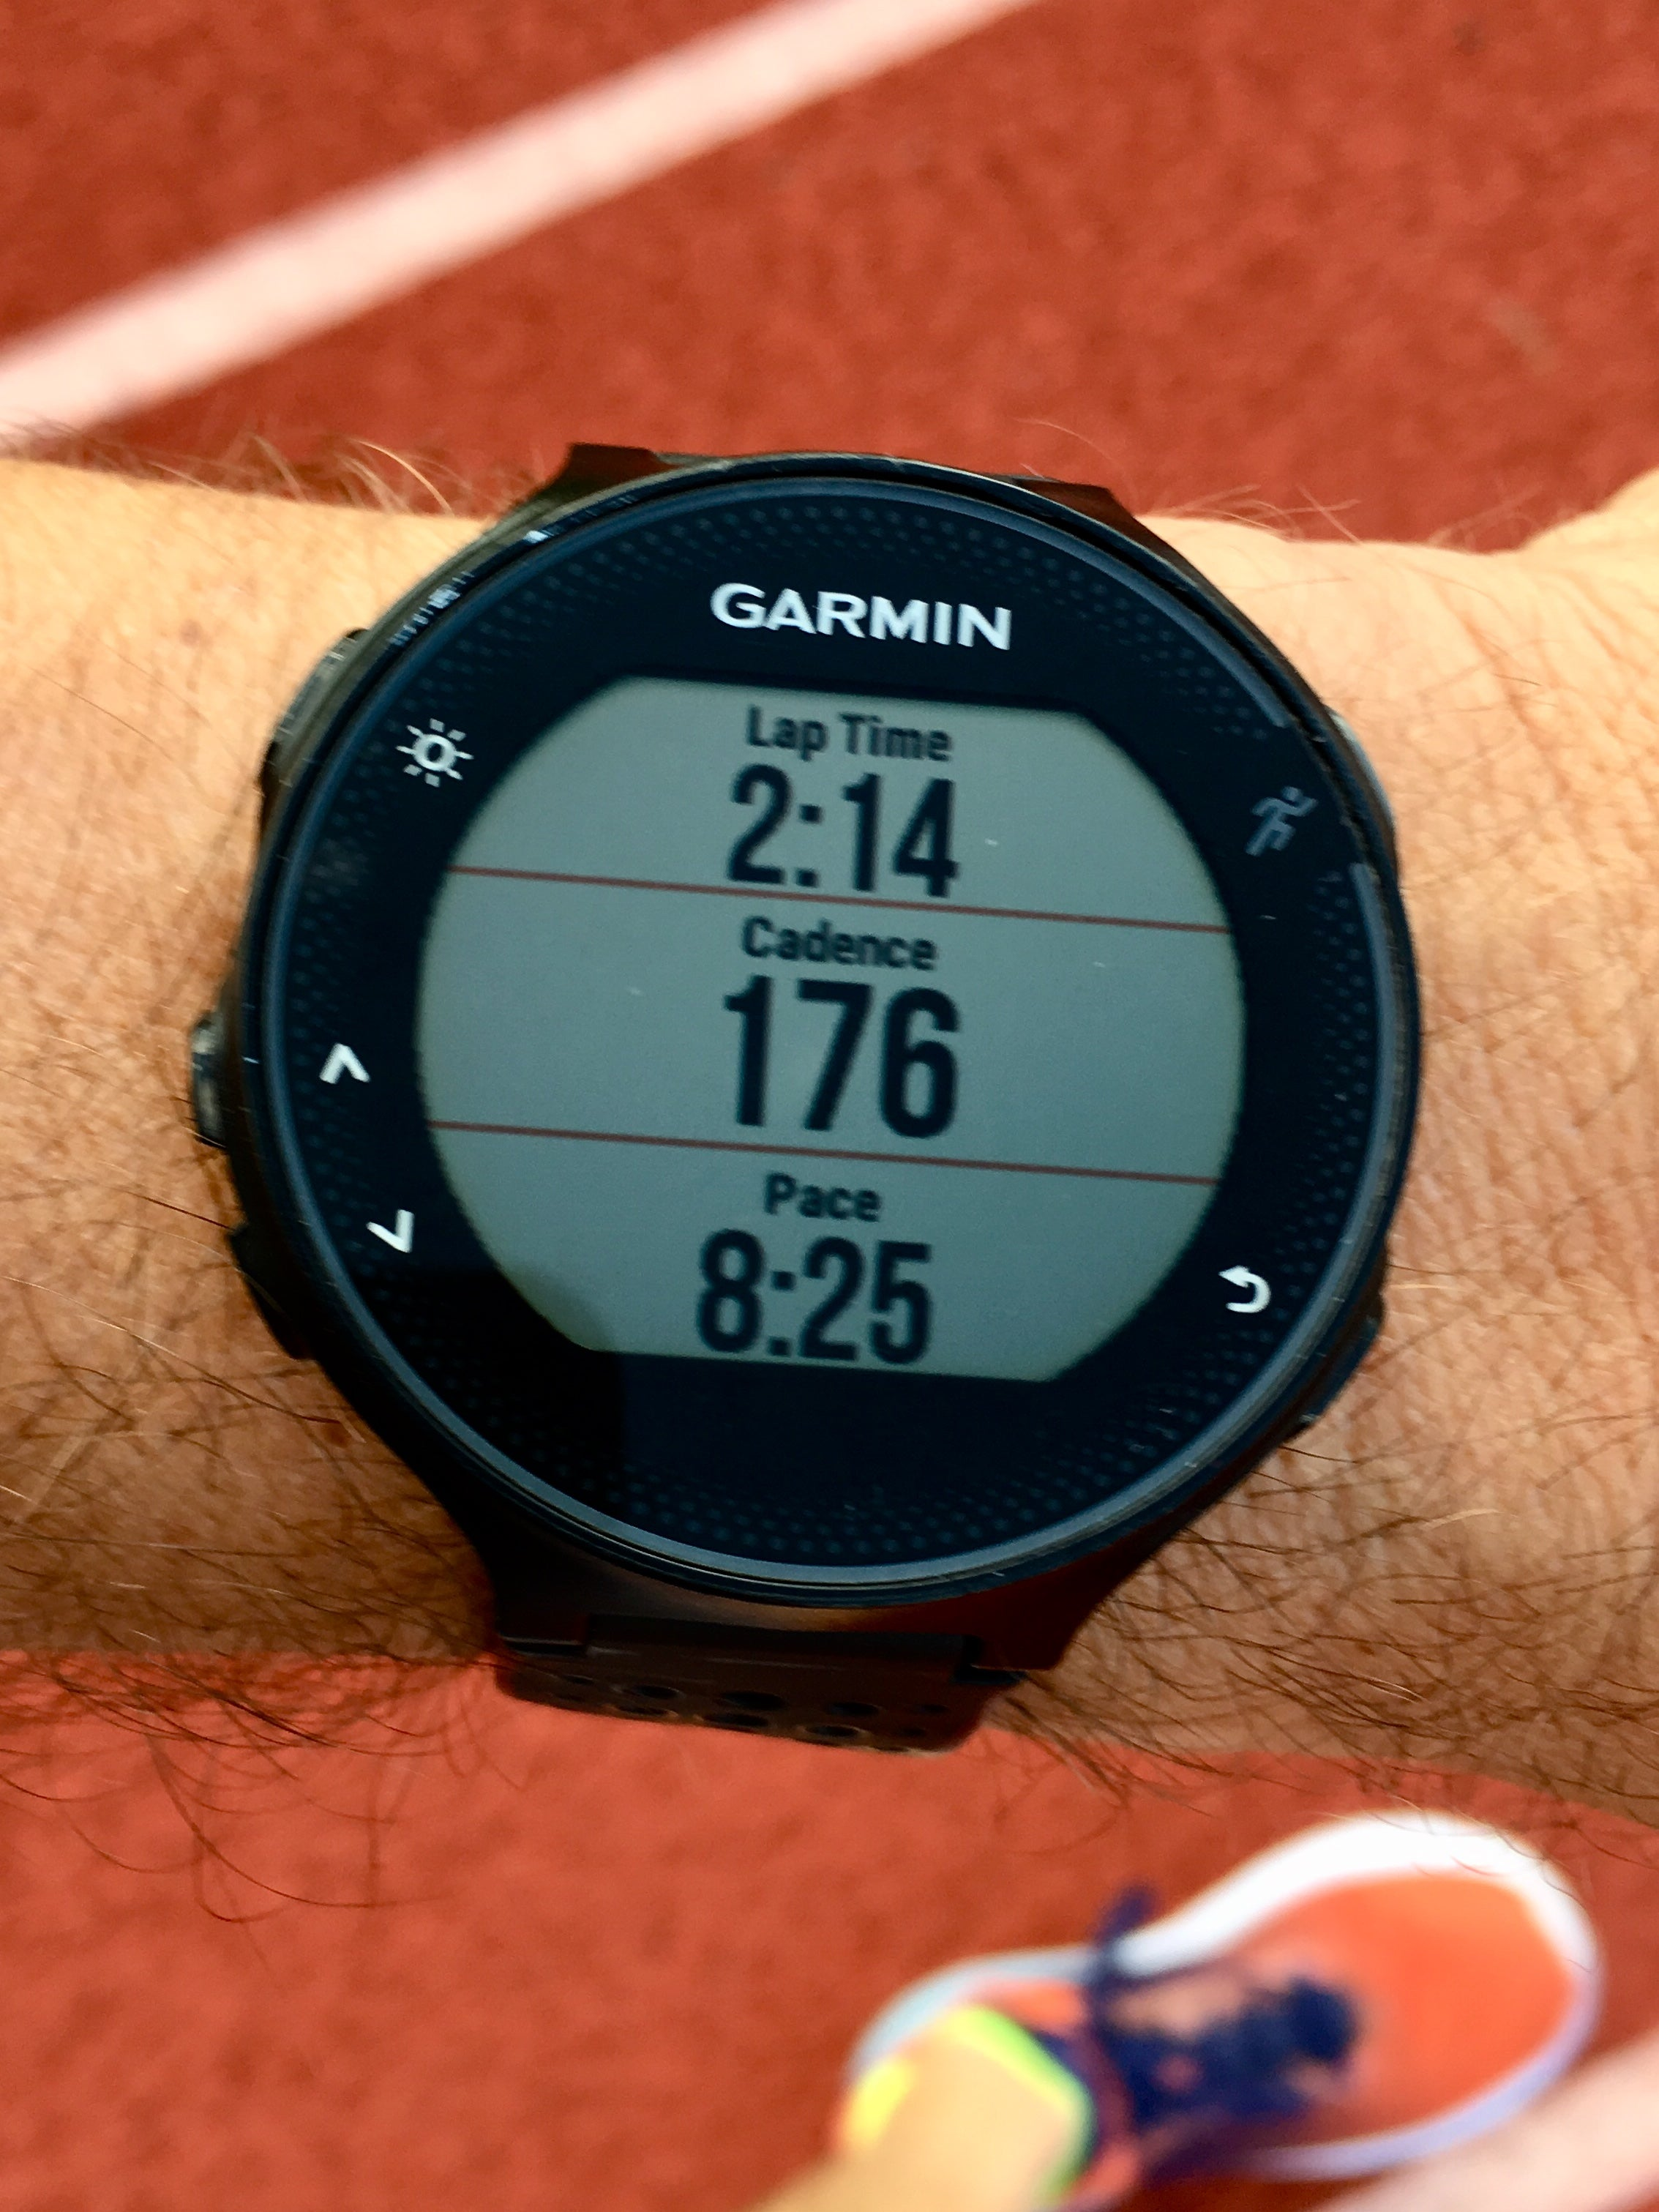 Garmin watch cadence and pace